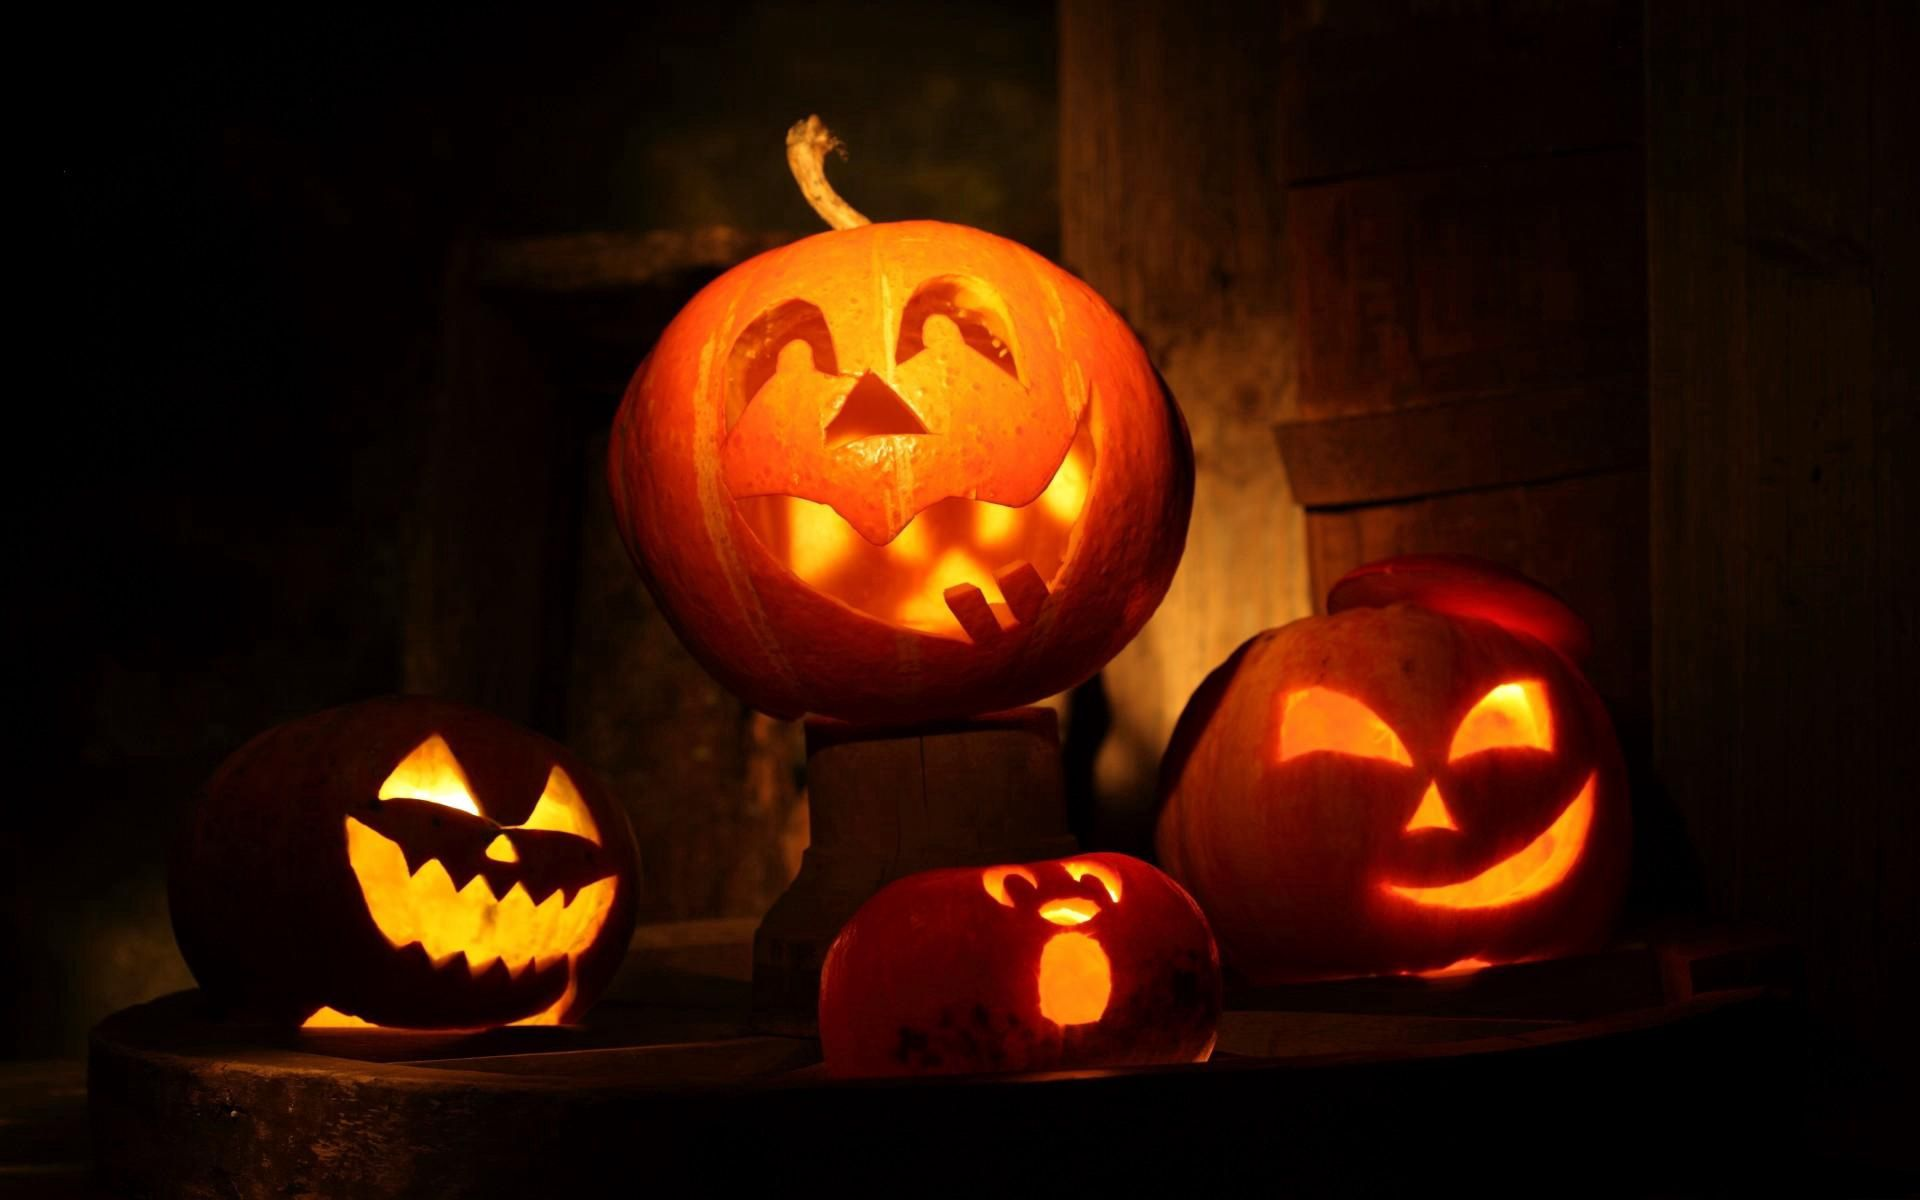 77539 download wallpaper Halloween, Pumpkin, Holidays, Night, Holiday, Fear screensavers and pictures for free